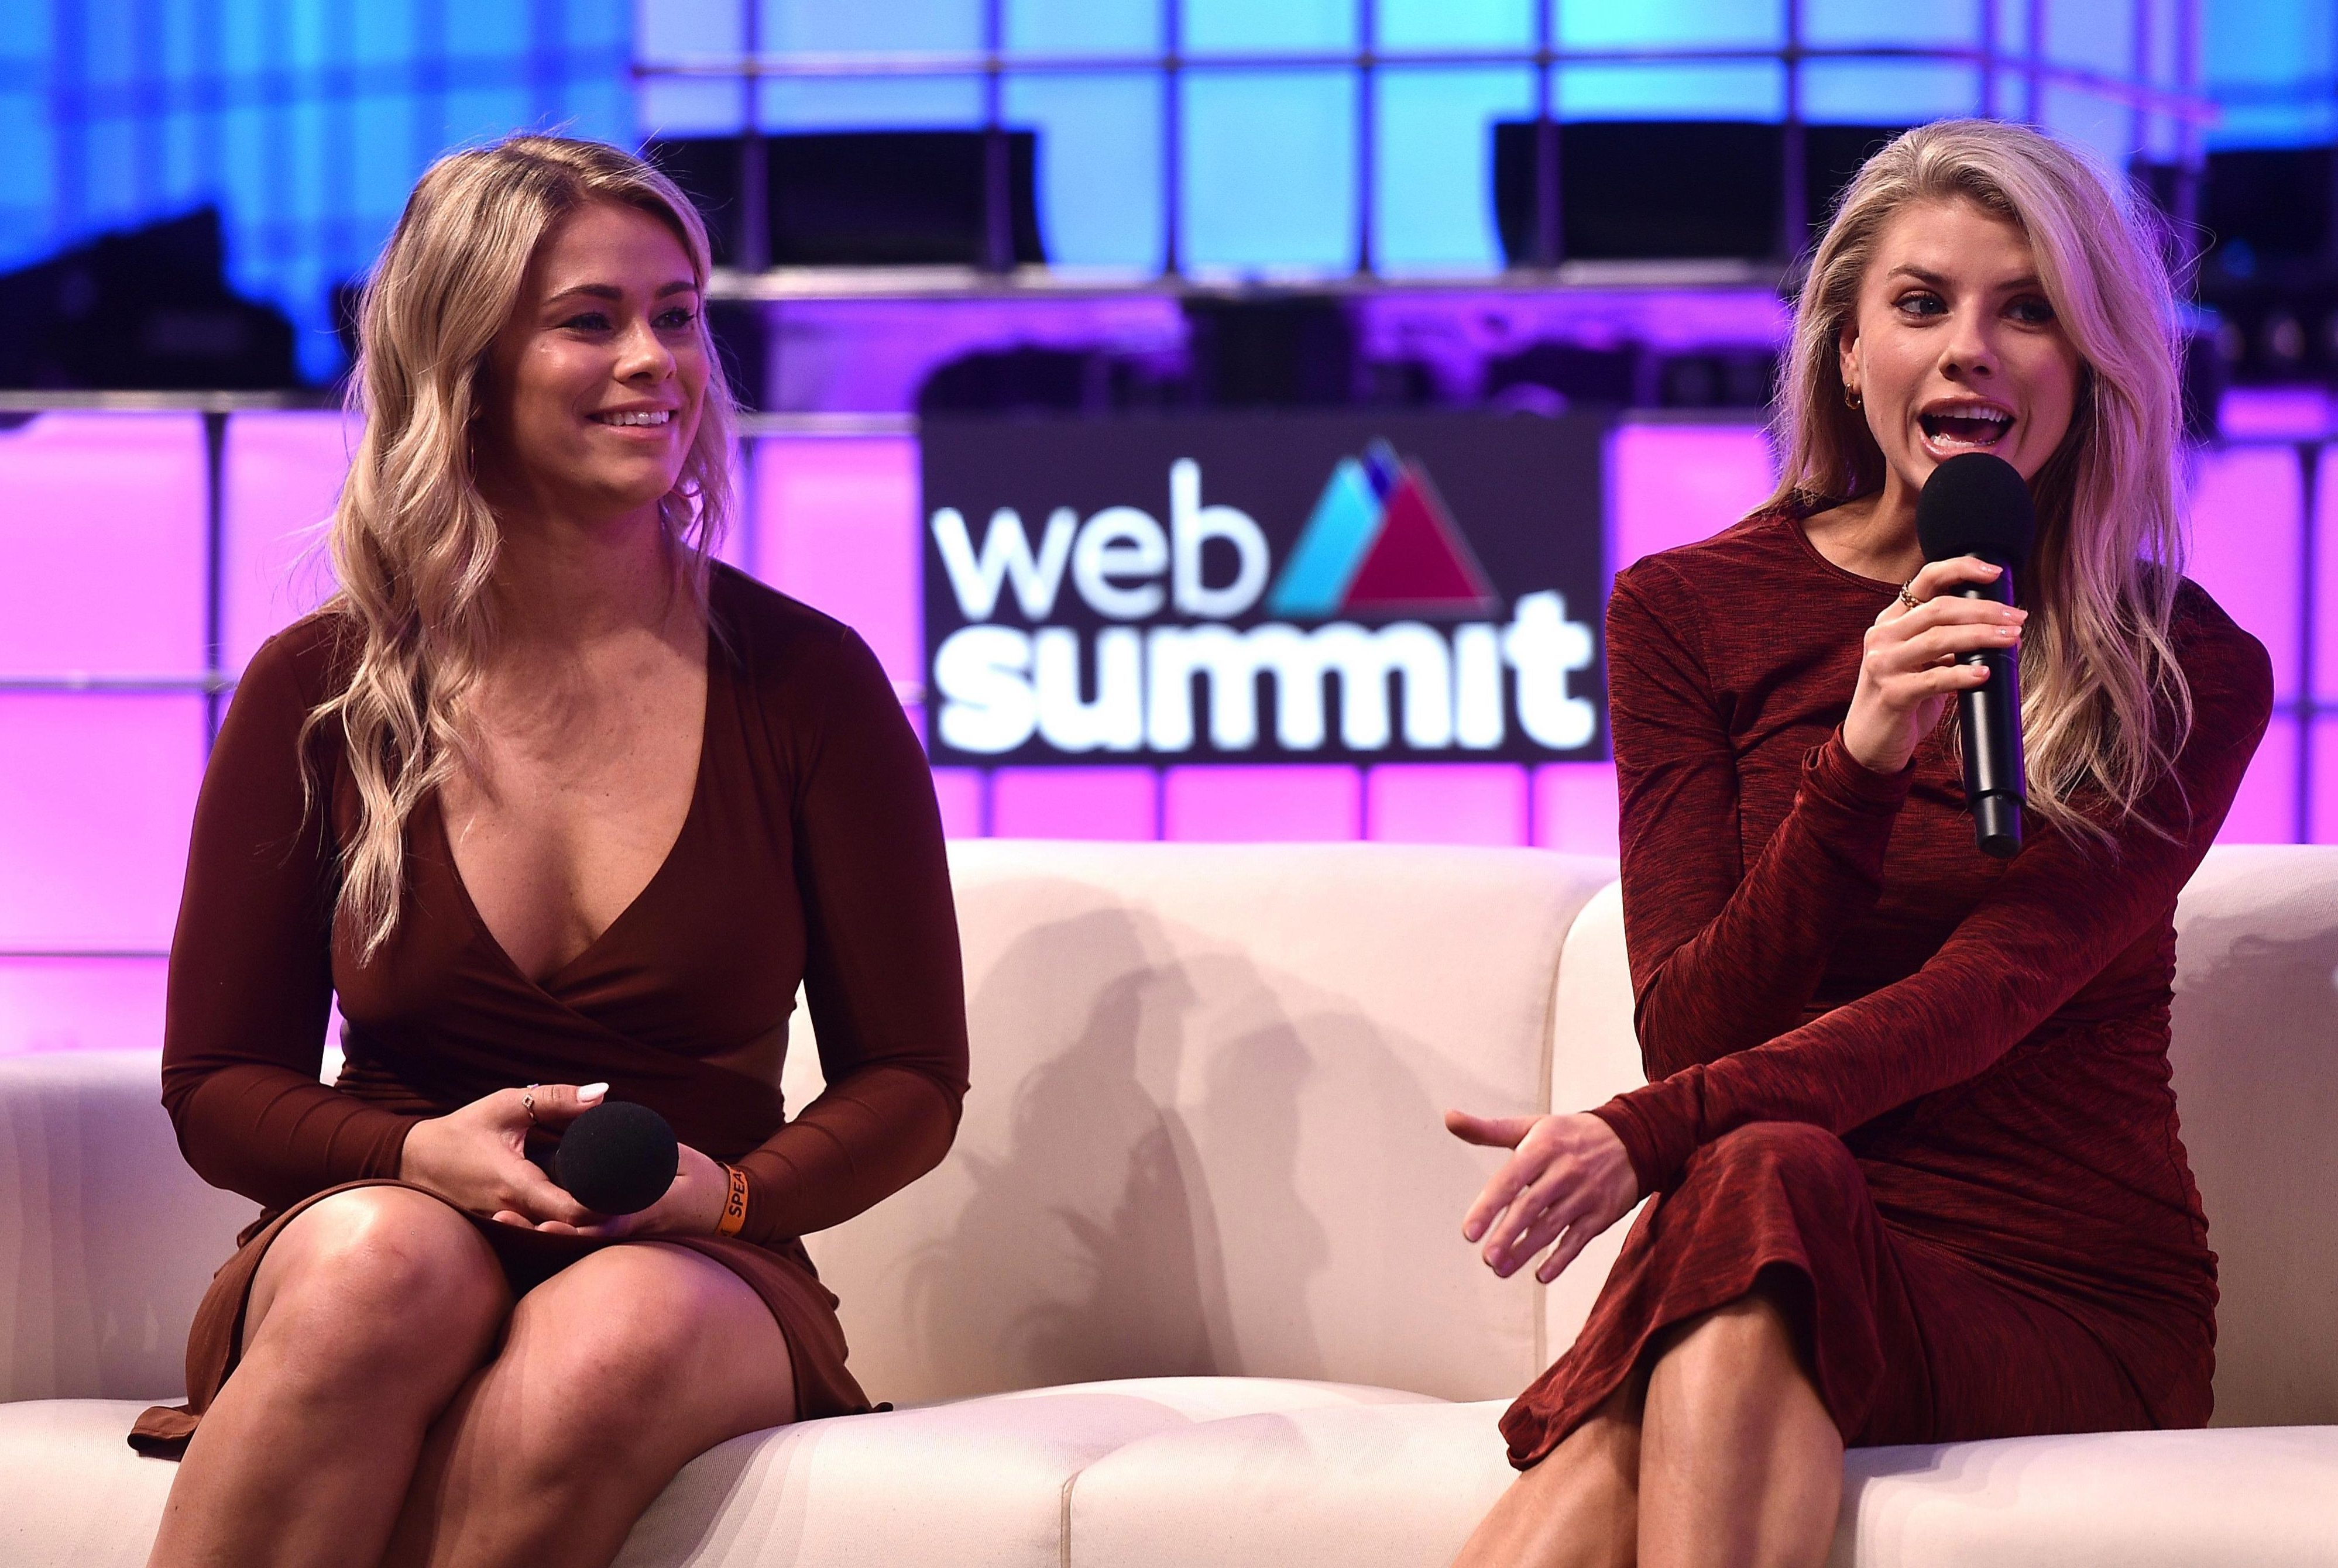 Paige VanZant speaks at a Web Summit in Lisbon with actress Charlotte McKinney